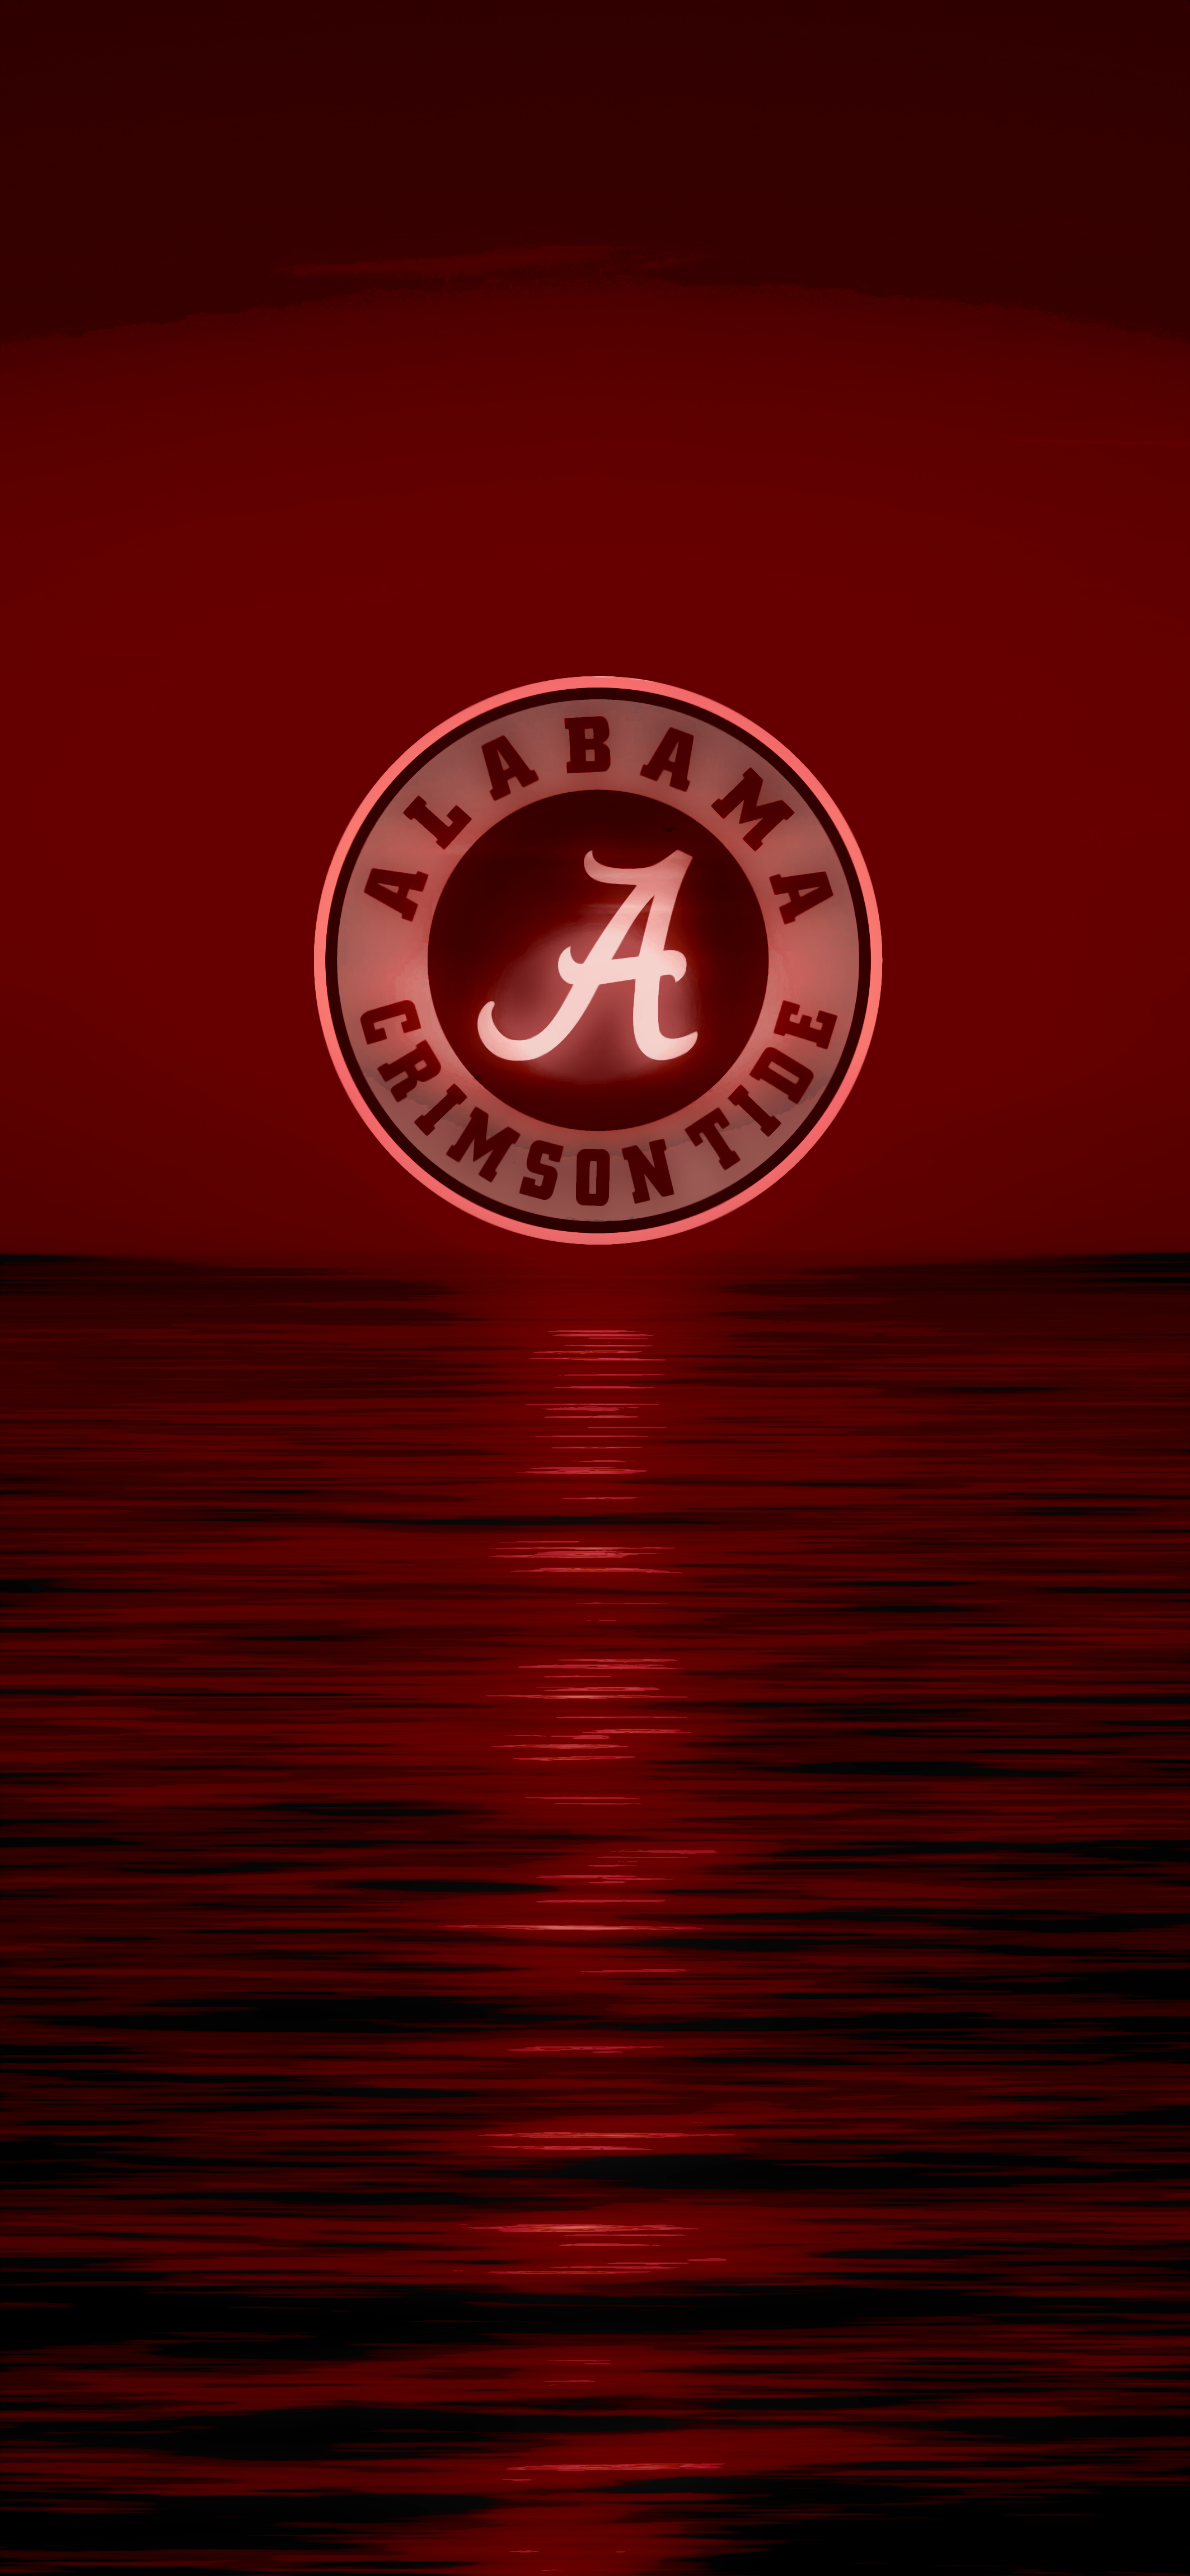 Tide 1 Rolltidealabama Alabama Crimson Tide Football Wallpaper Alabama Crimson Tide Logo Alabama Football Roll Tide